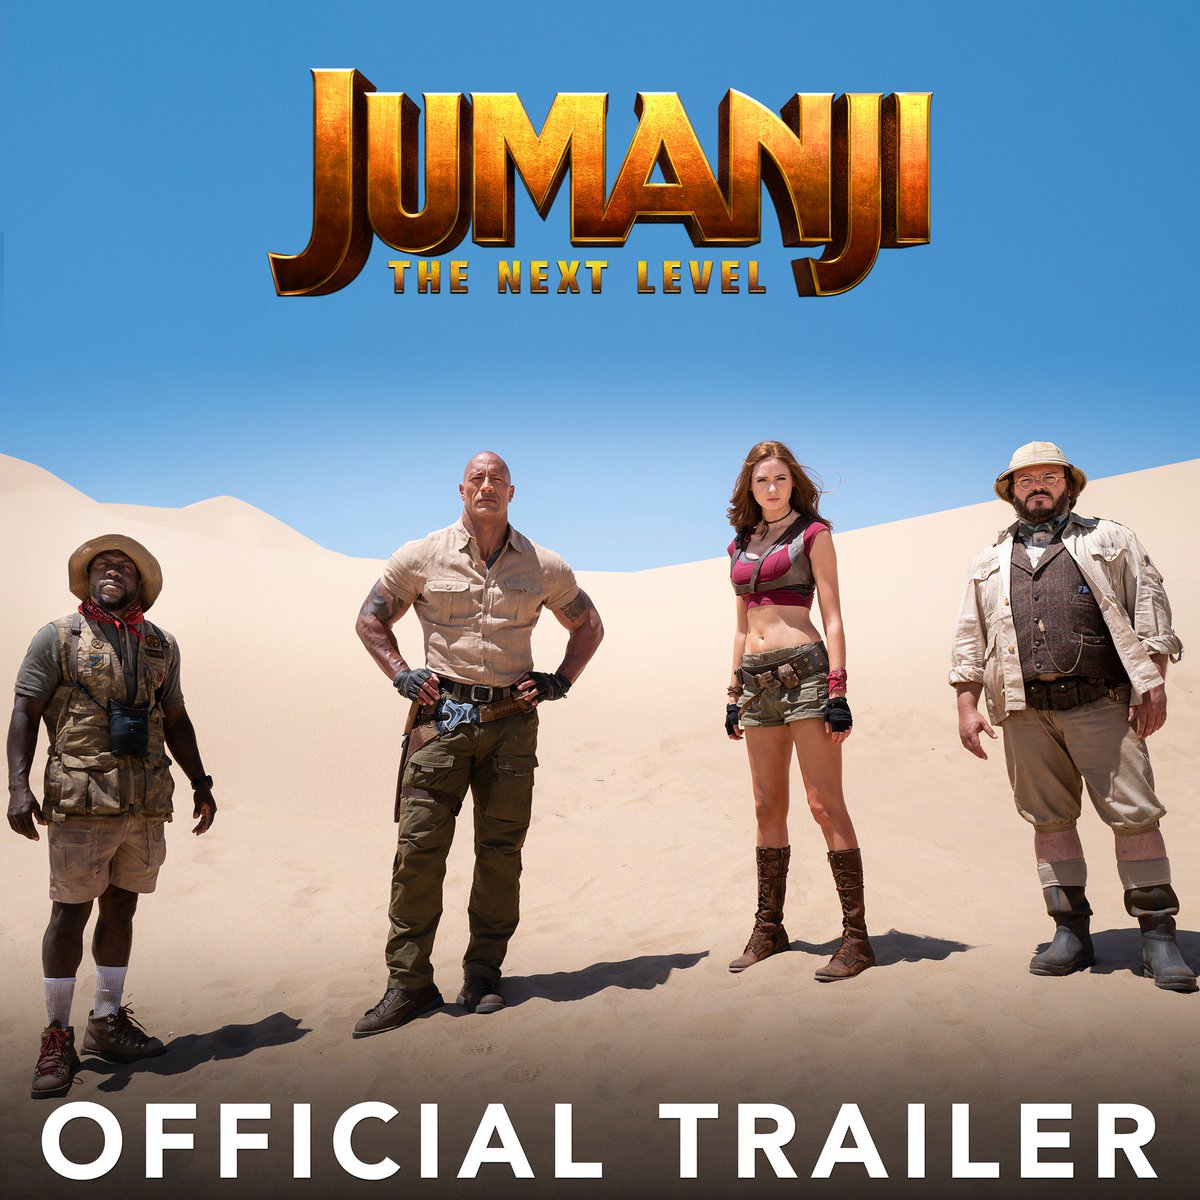 The game is back...but it's busted and everything you THINK you know about Jumanji...well, you don't. #JumanjiTheNextLevel #newmanji